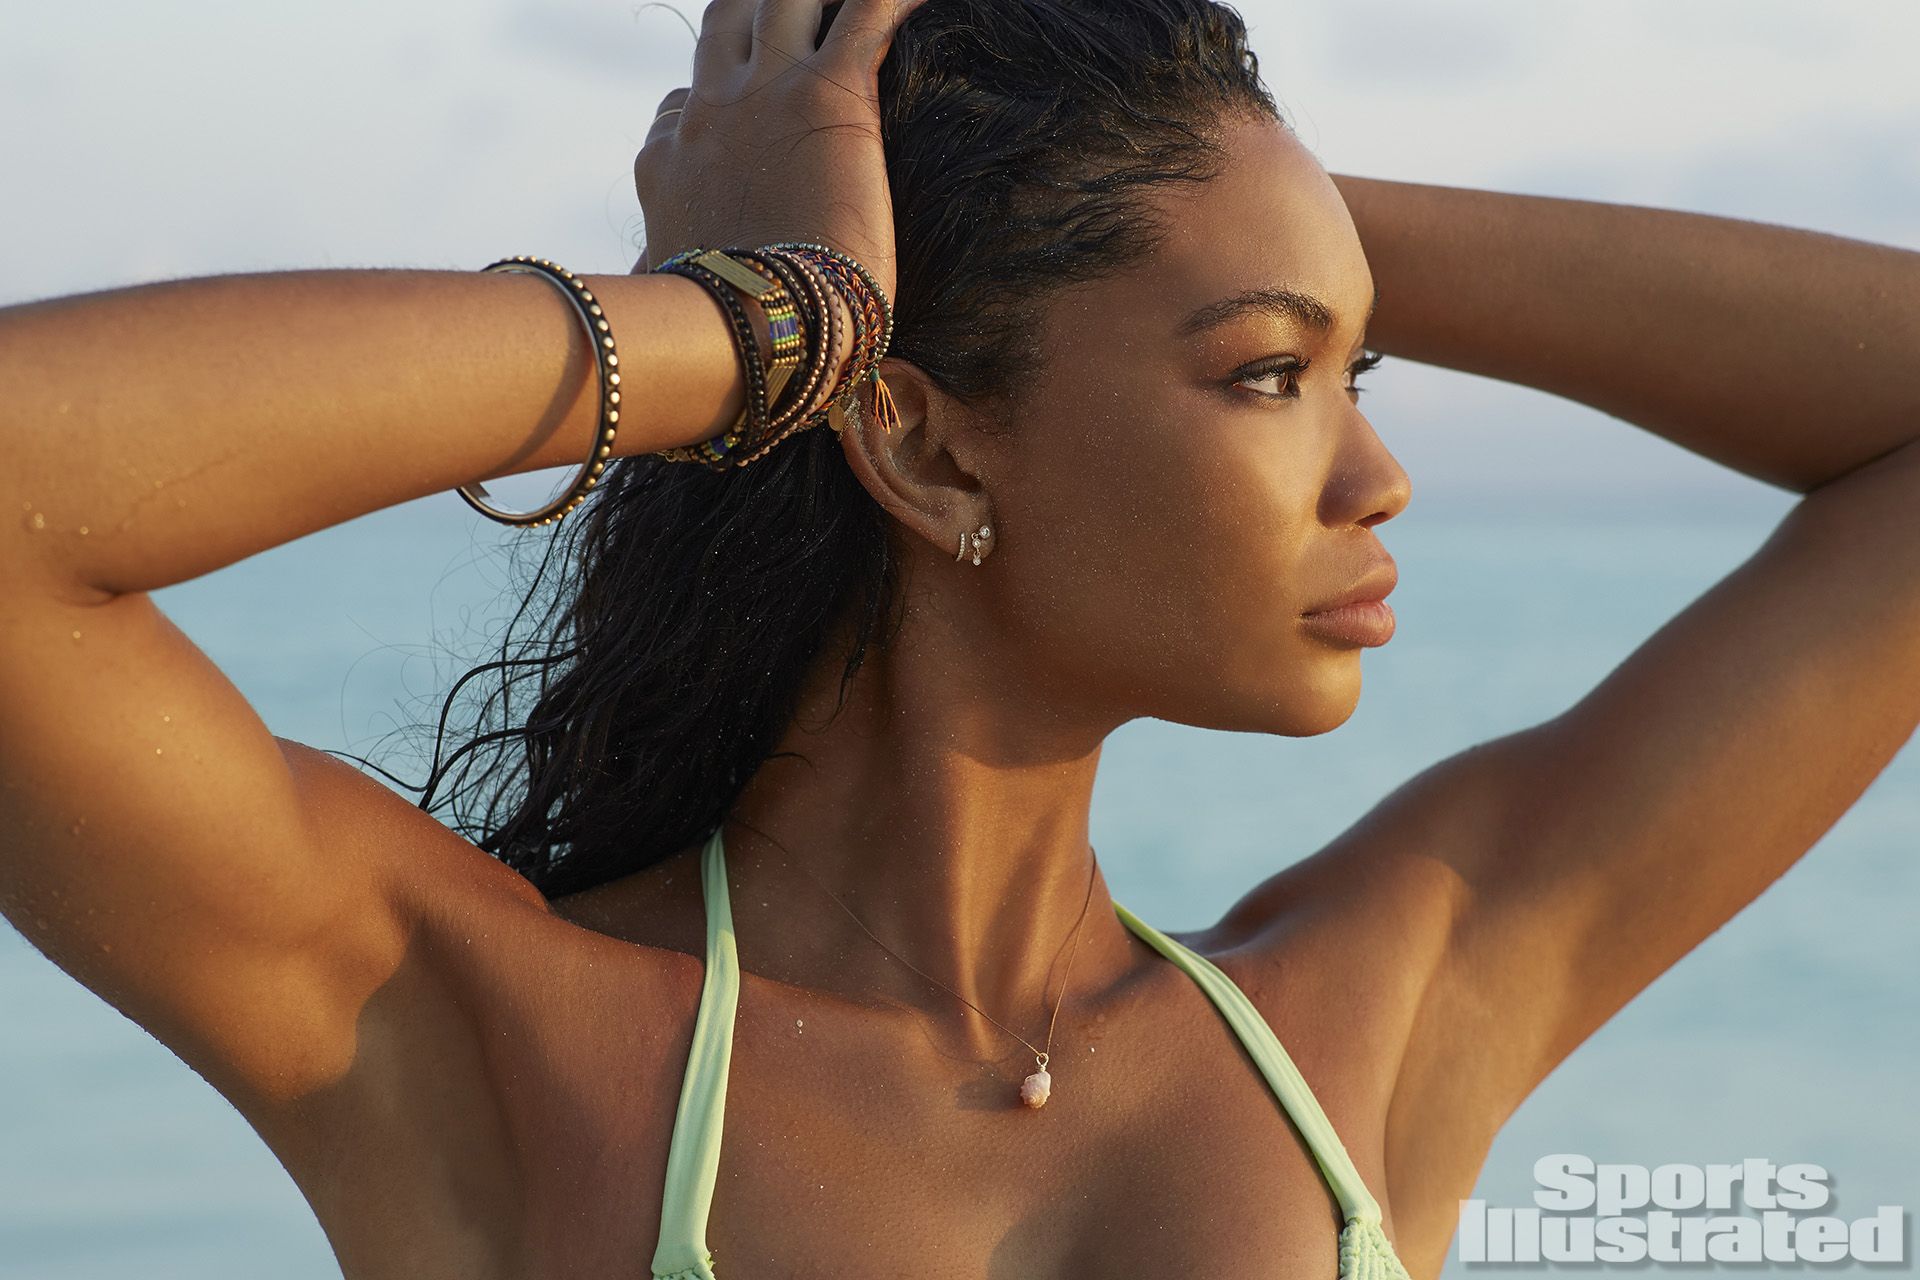 chanel iman 2014 swimsuit photo gallery sicom